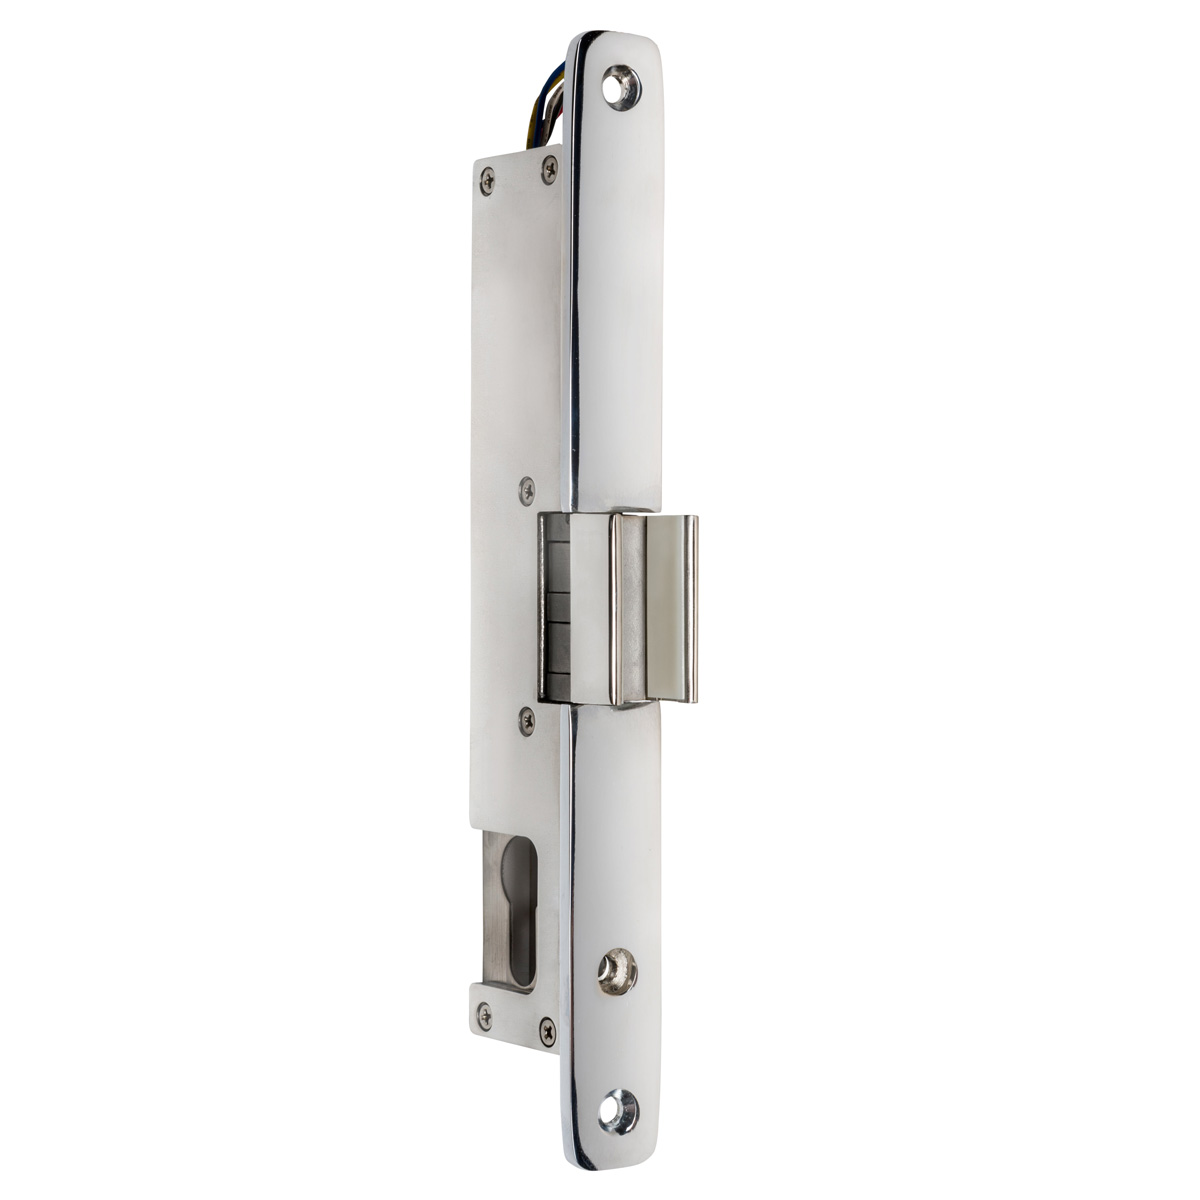 Smartking Electric Strike For Glass Doors Smartking